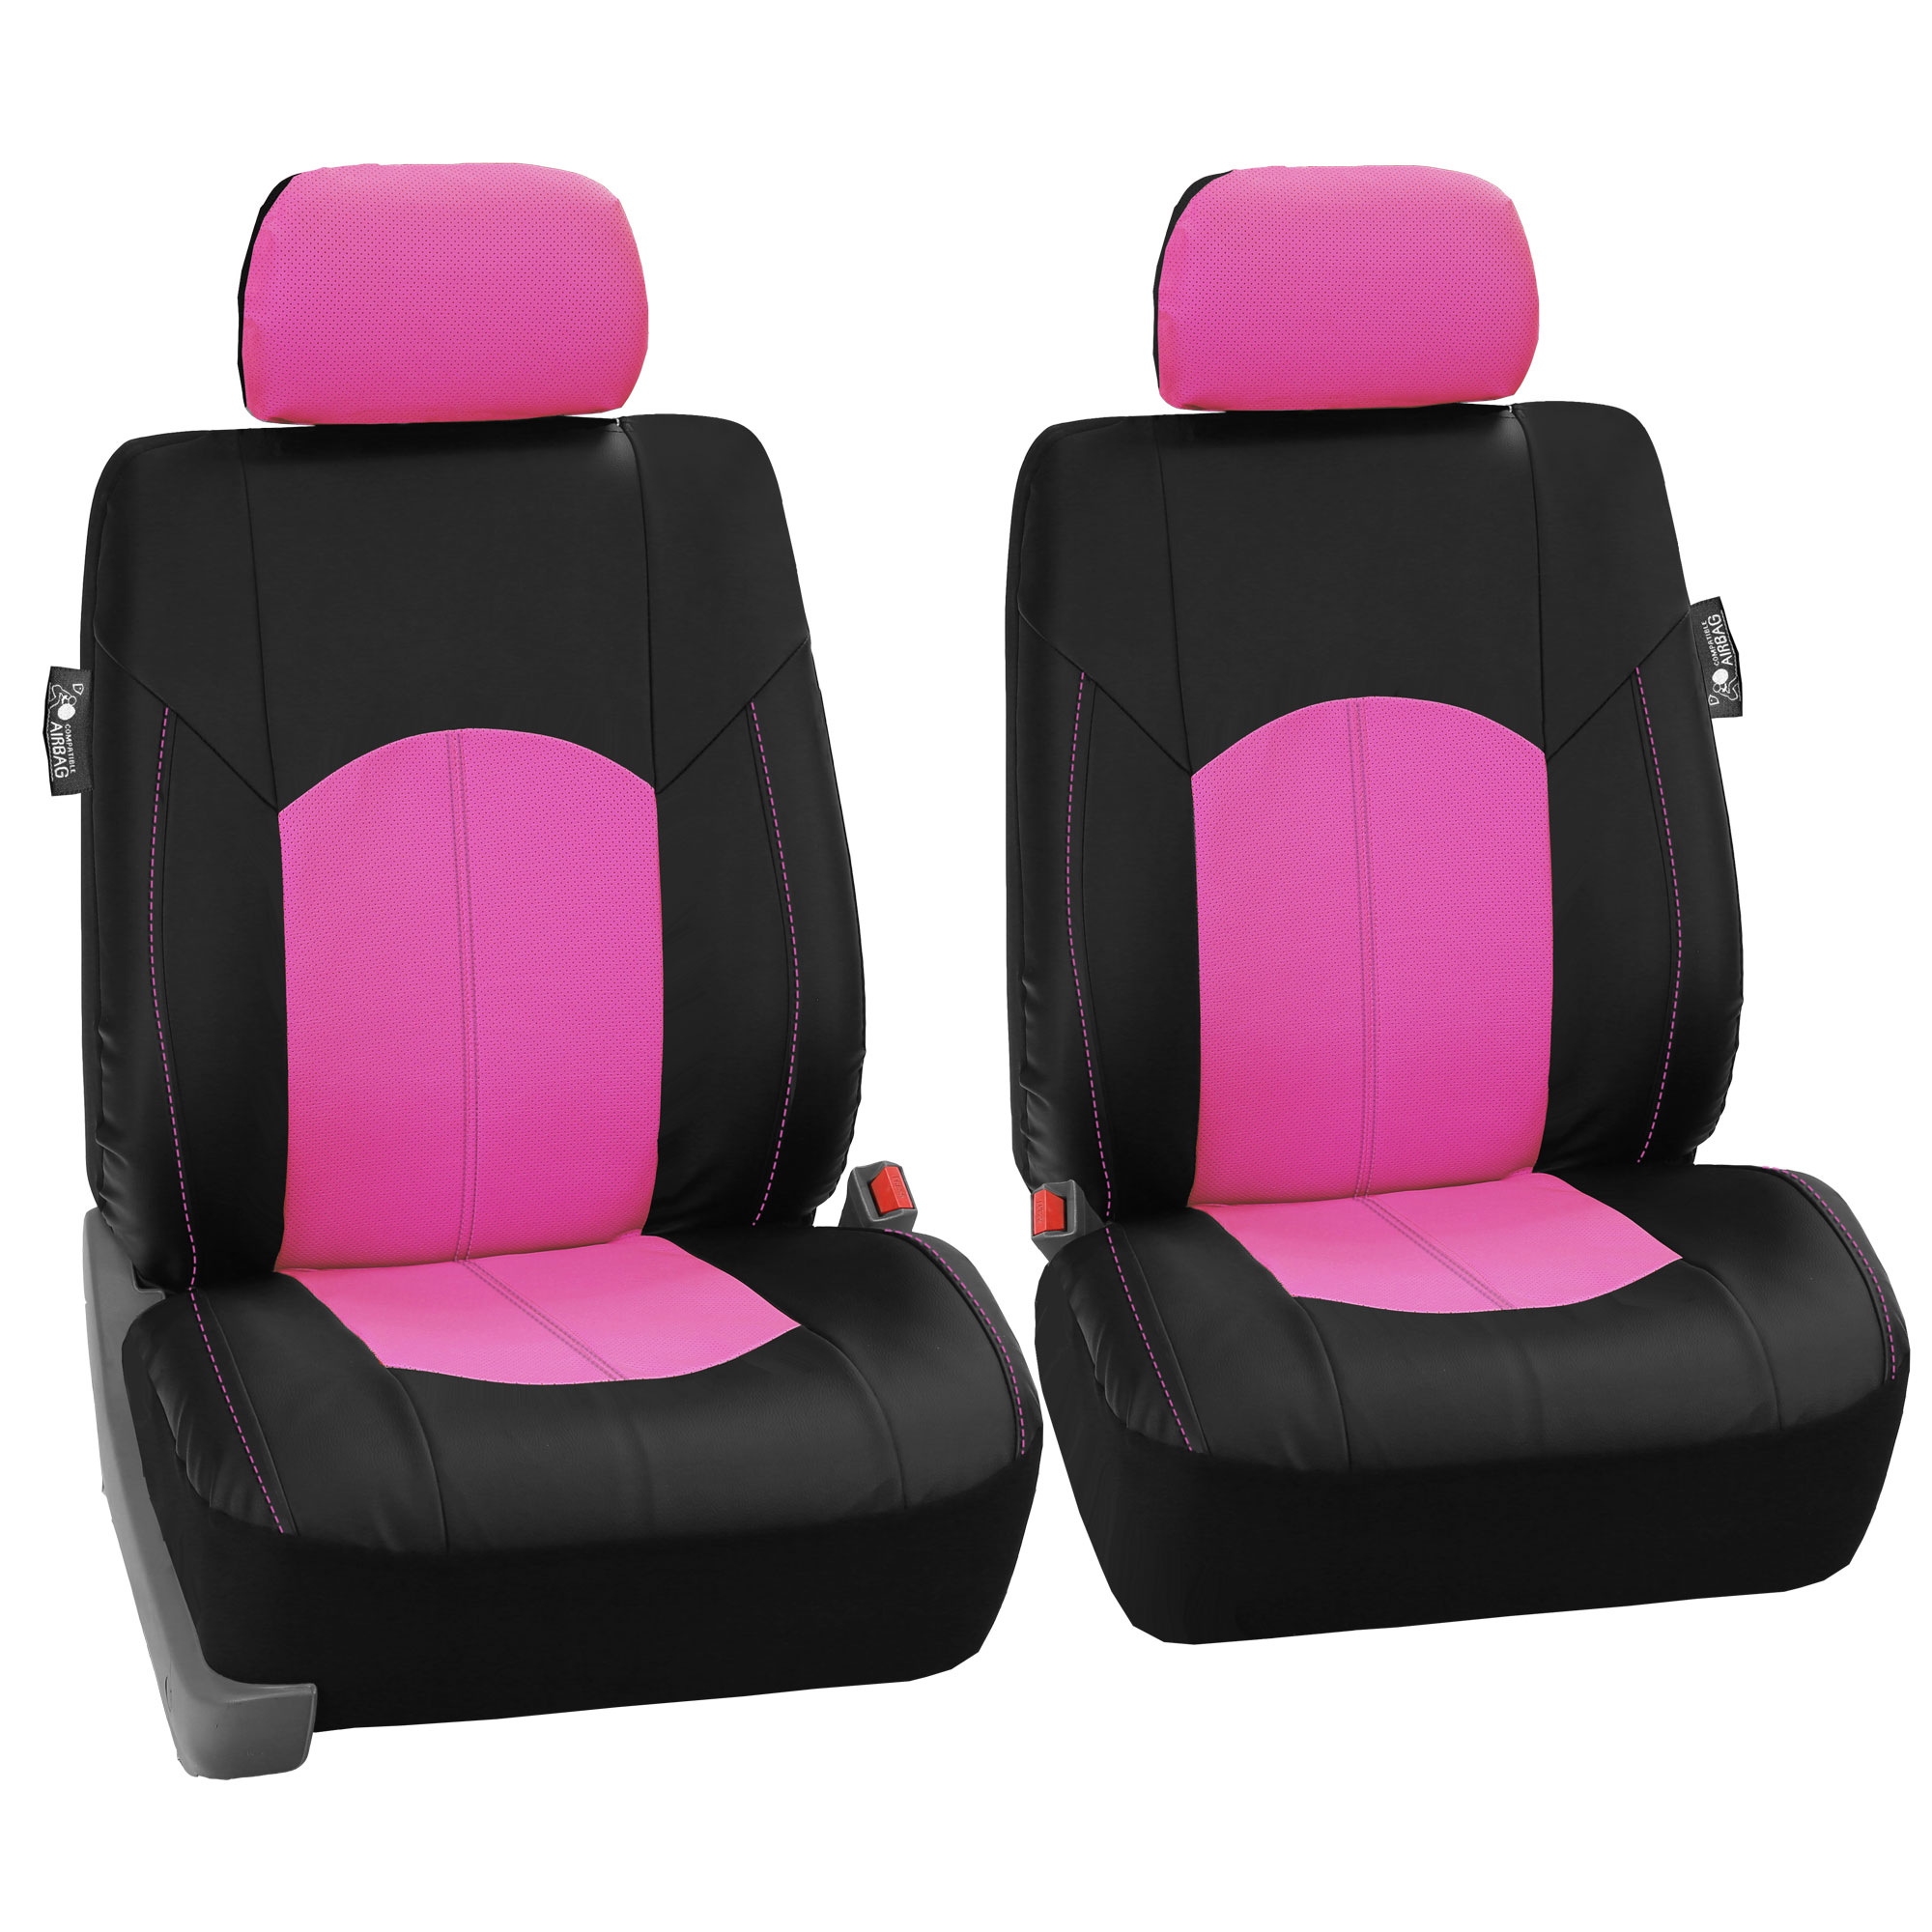 3 Of 11 Deluxe Perforated Leather Car Seat Cover Pink W Floor Mat